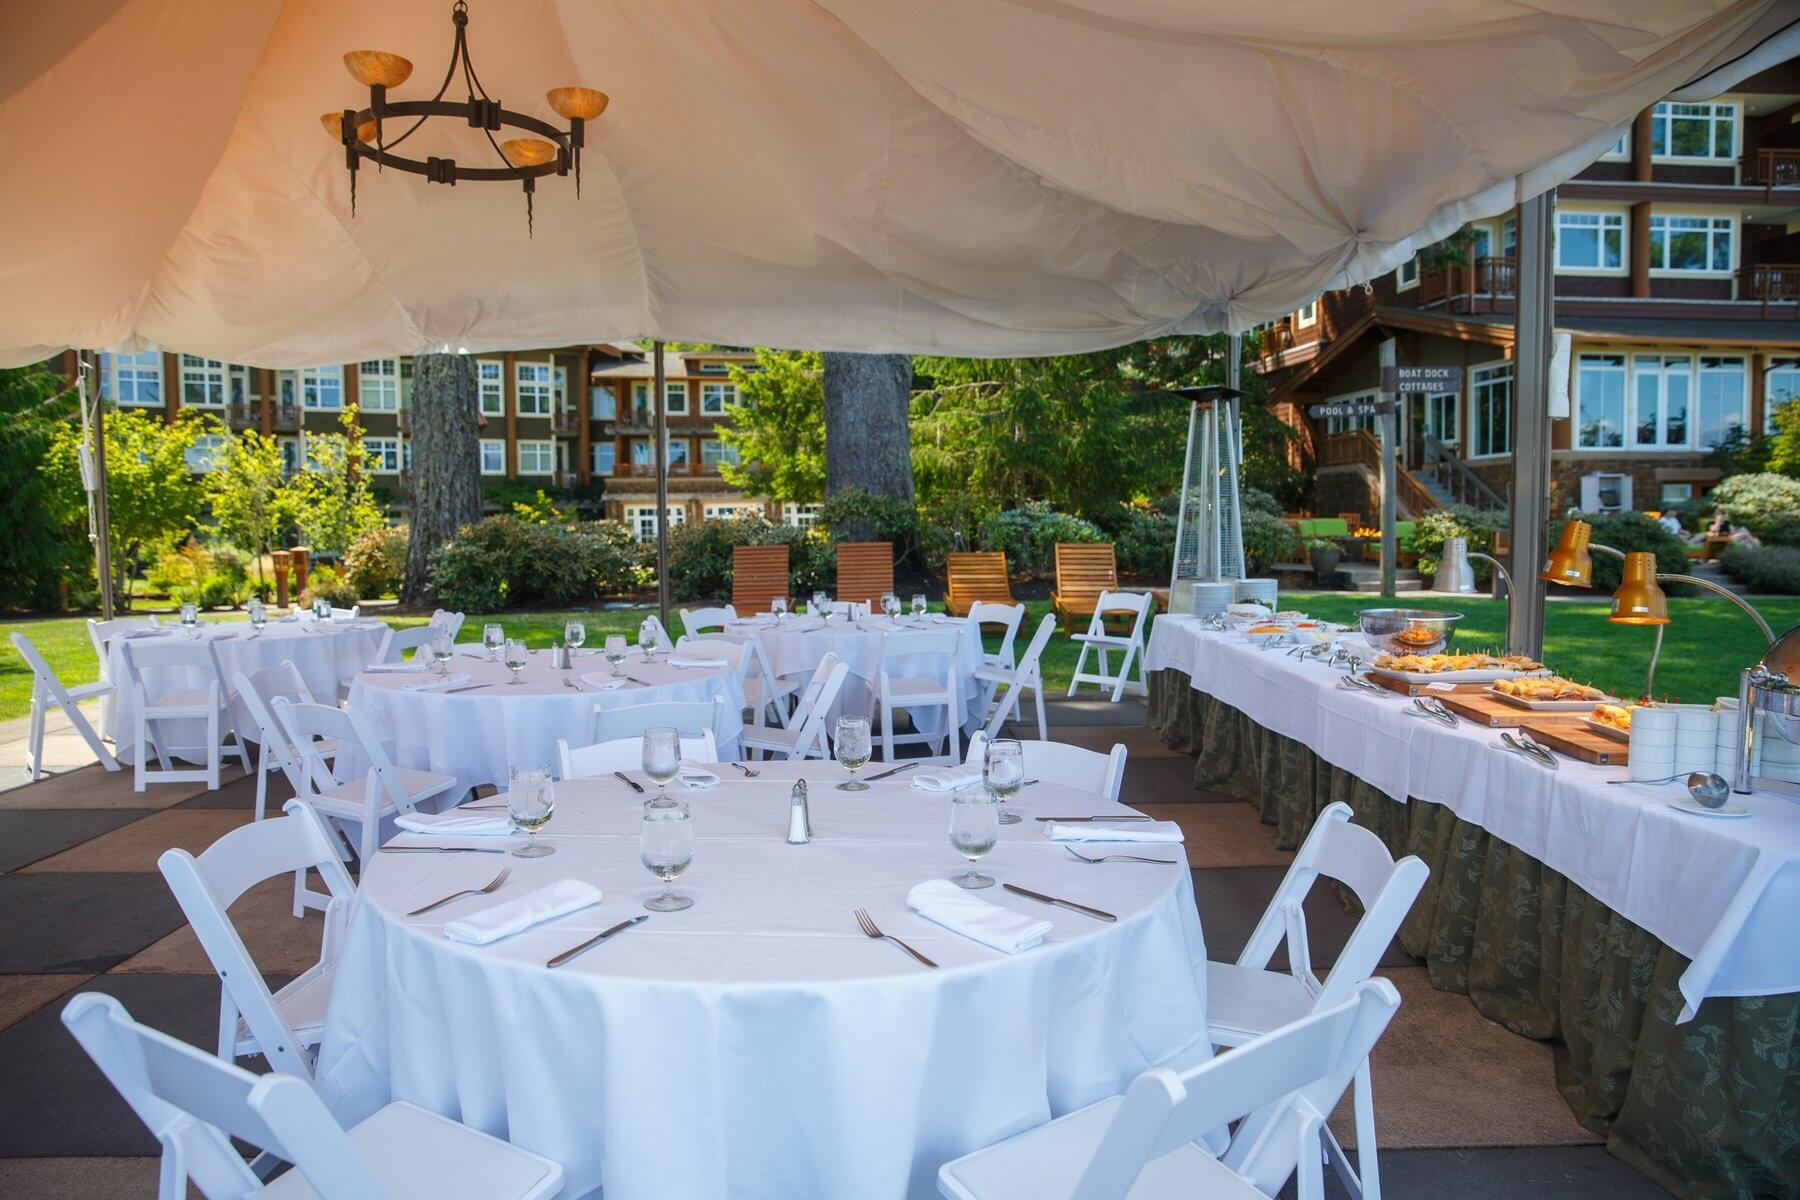 Outdoor event space set with banquet tables